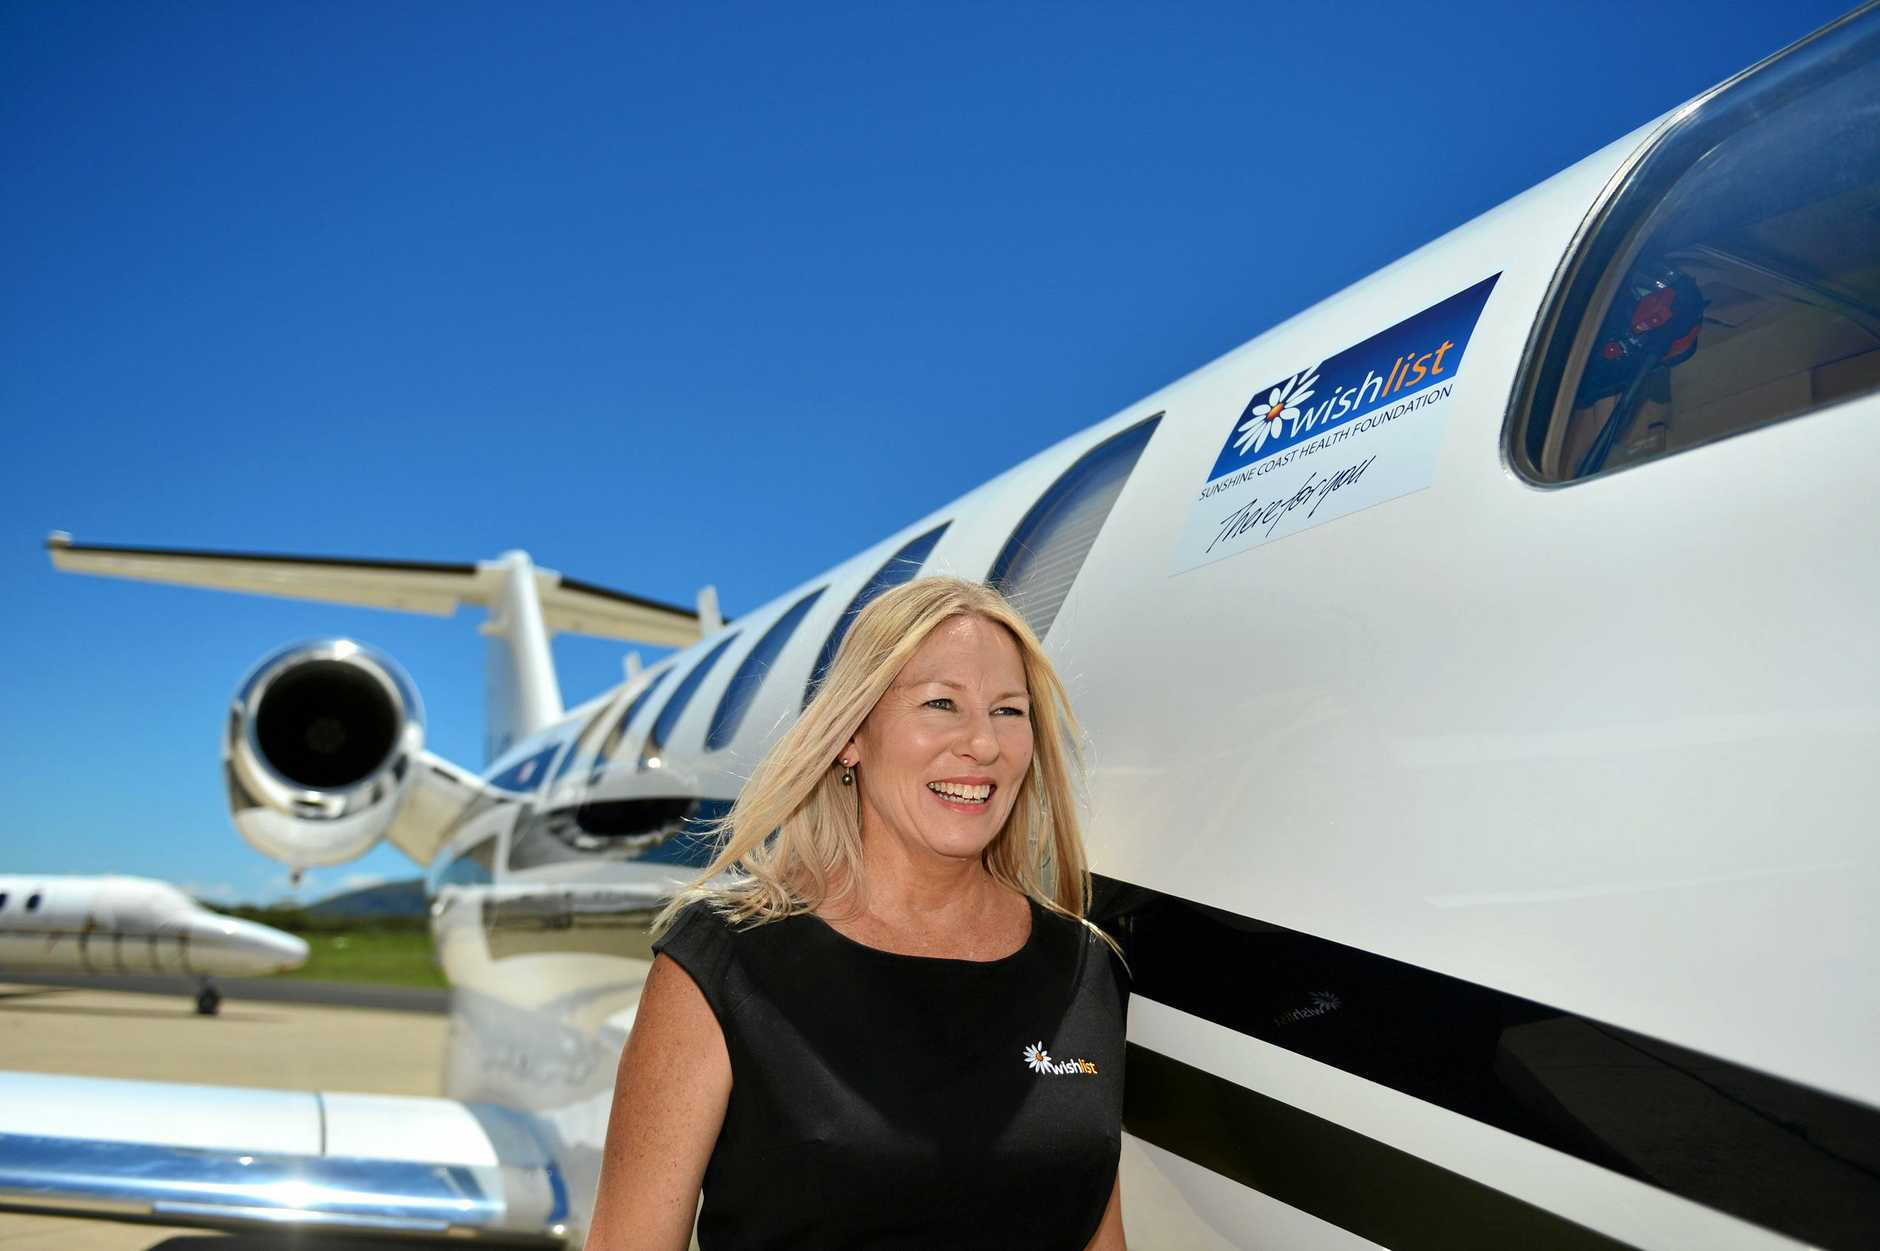 Sunshine Coast Charity Wishlist CEO Lisa Rowe is happy to have  formed a partnership with McDermott Aviation to help the community.